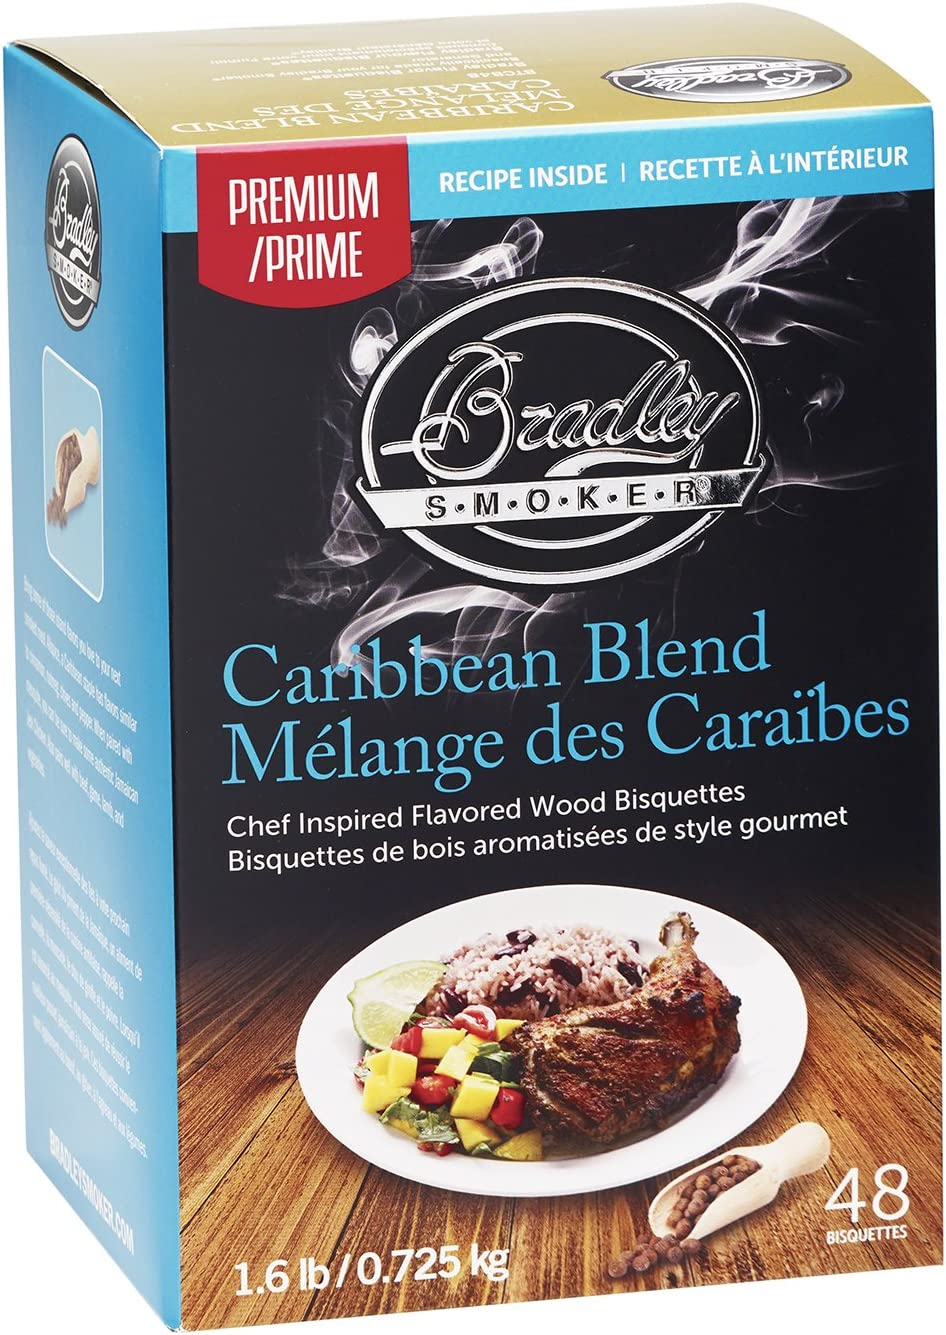 Bradley Smoker Caribbean Blend Bisquettes (48 Pack)